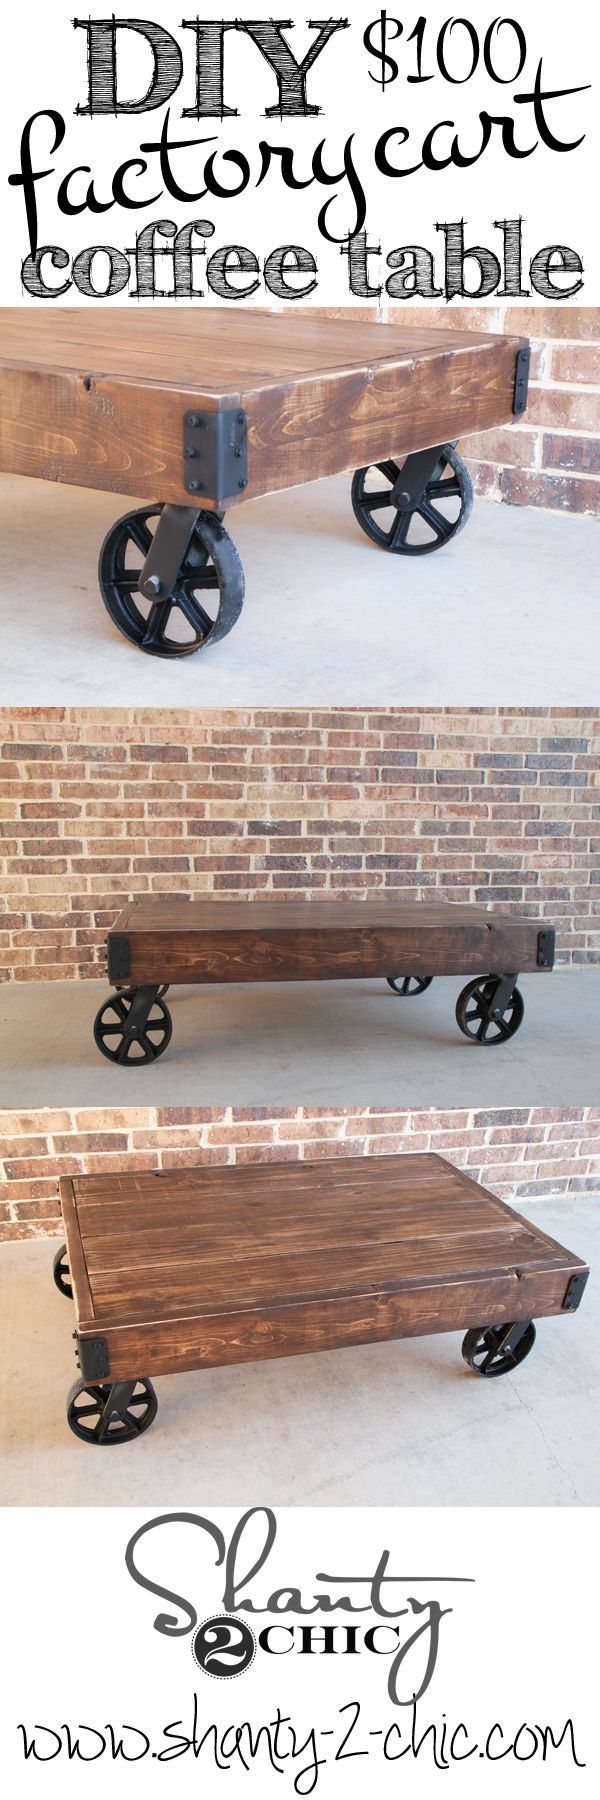 DIY Factory Cart Coffee Table – #coffee #factory …